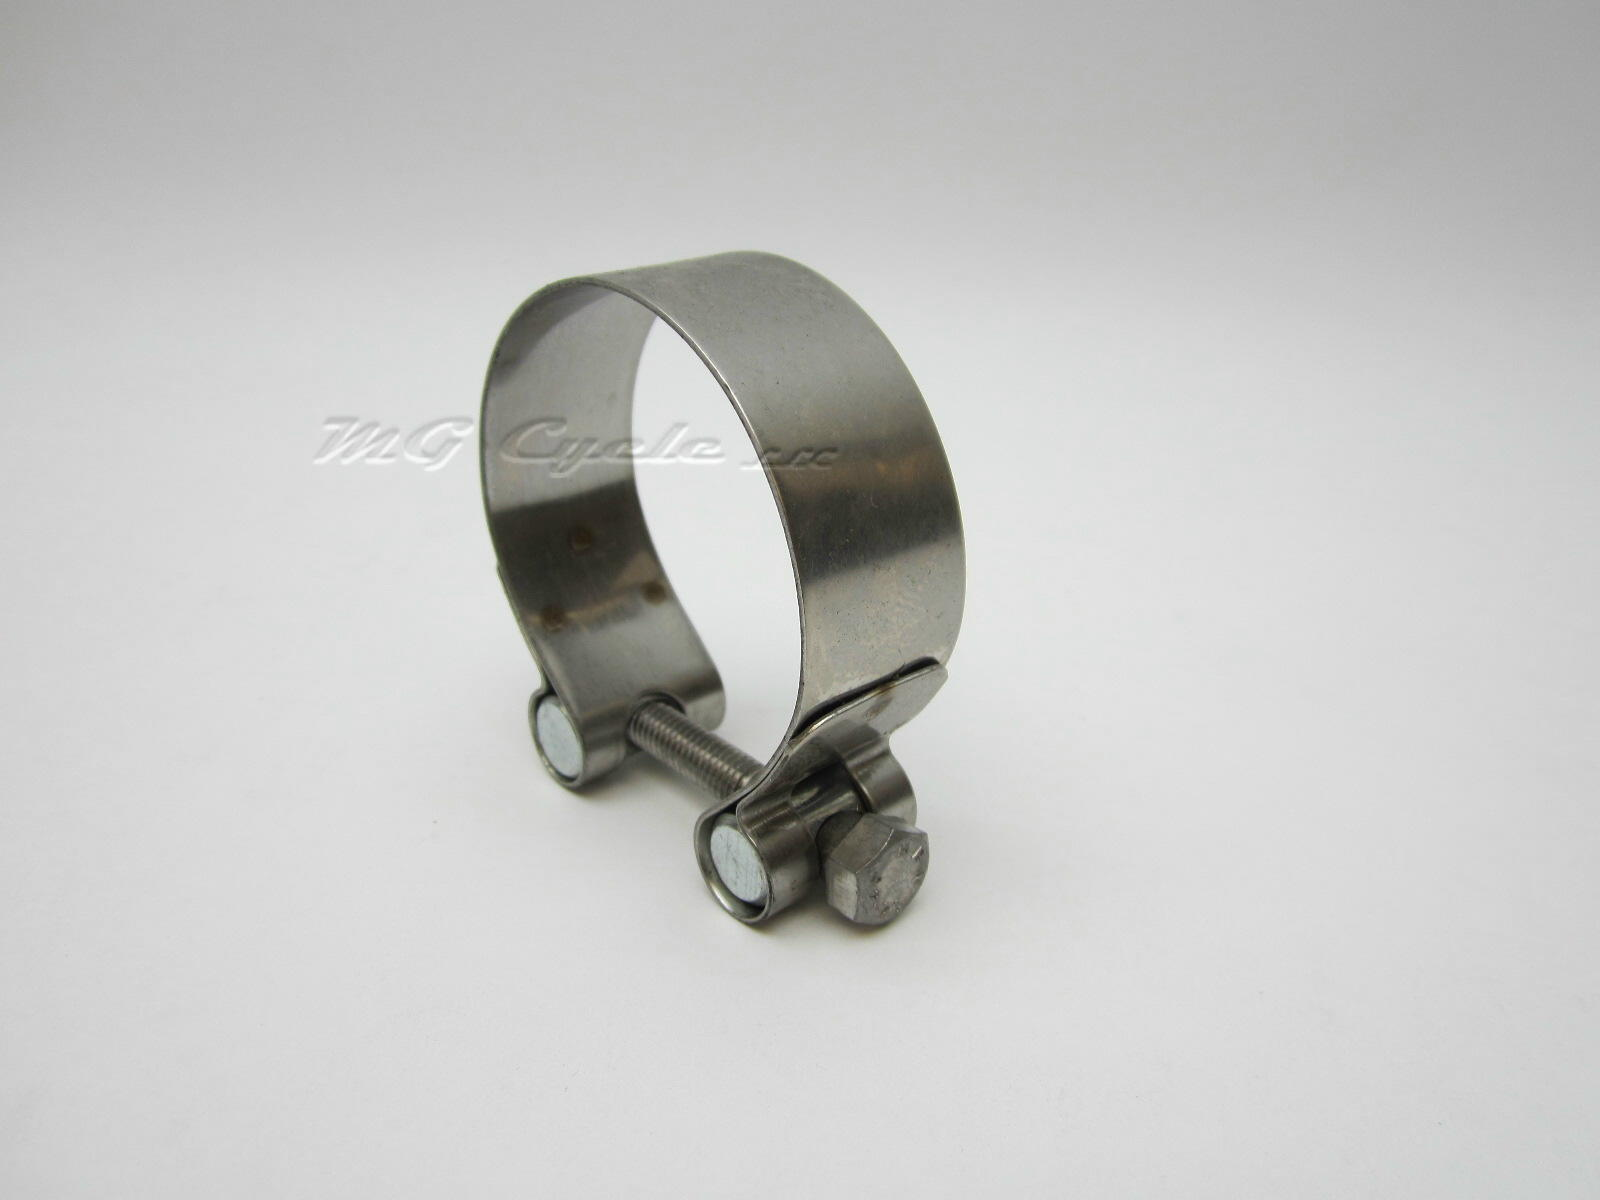 48.5mm exhaust clamp V11 Sport/LM, V7/V7II GU01123430